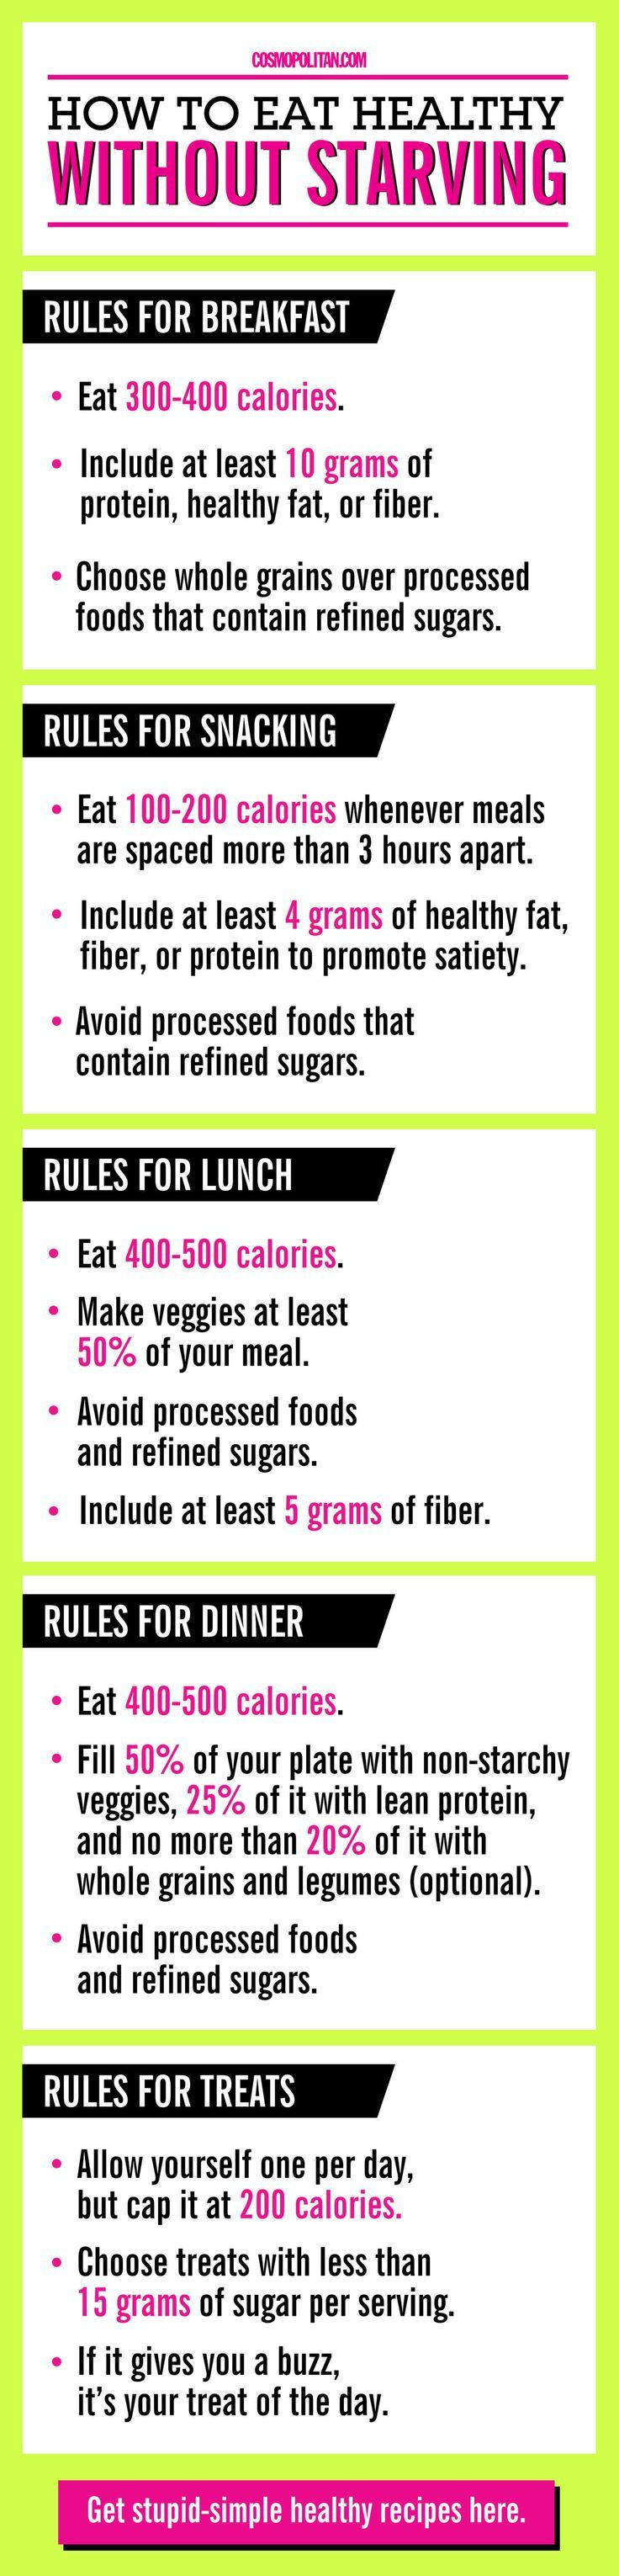 HEALTHY EATING PLAN: Use this healthy eating guide from registered dietitian Isabel Smith, to keep your meals, snacks, and treats (yes, ~*TrEaTs~*!) as healthy as can be. Here you'll find easy, delicious, and low calorie breakfast, lunch, dinner, snack, a